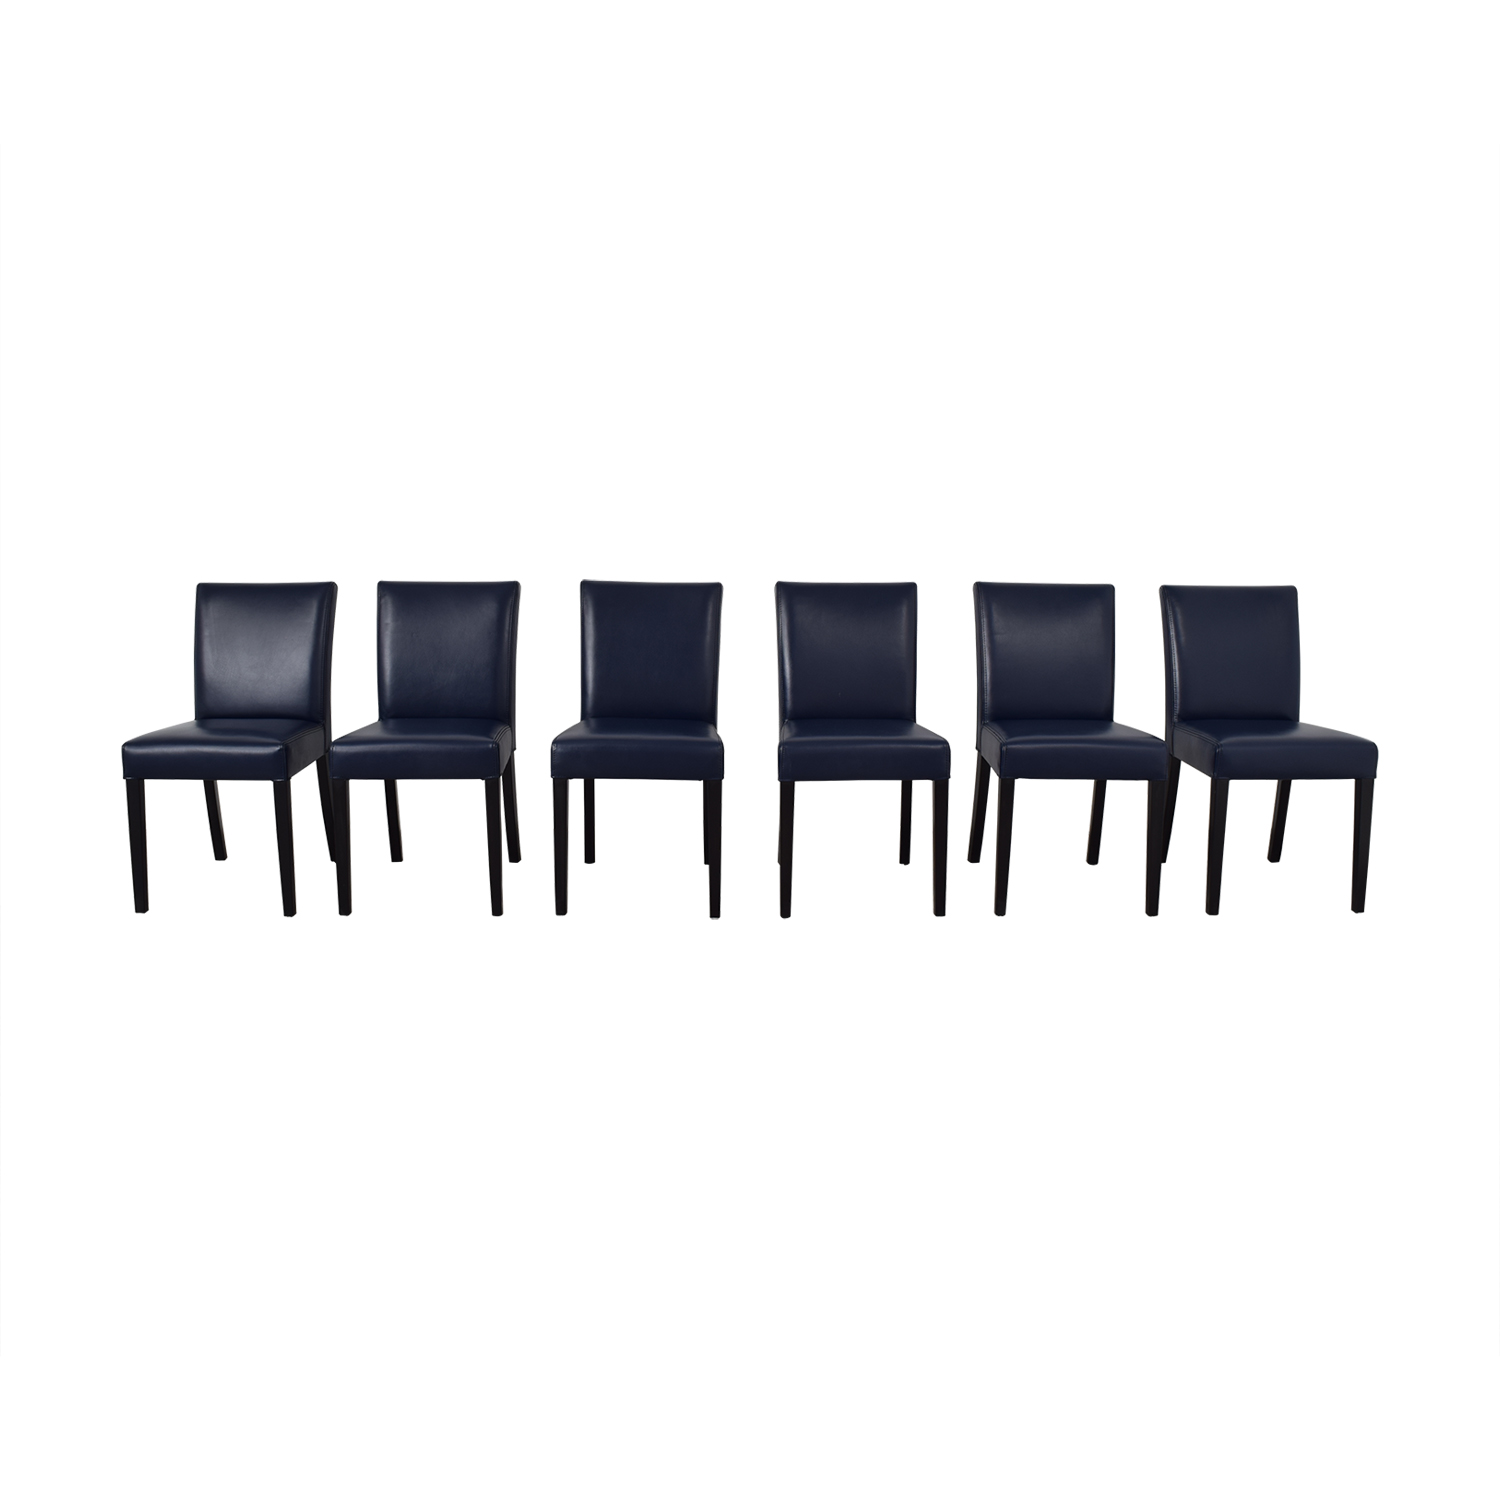 Crate & Barrel Crate & Barrel Lowe Dining Chairs navy blue